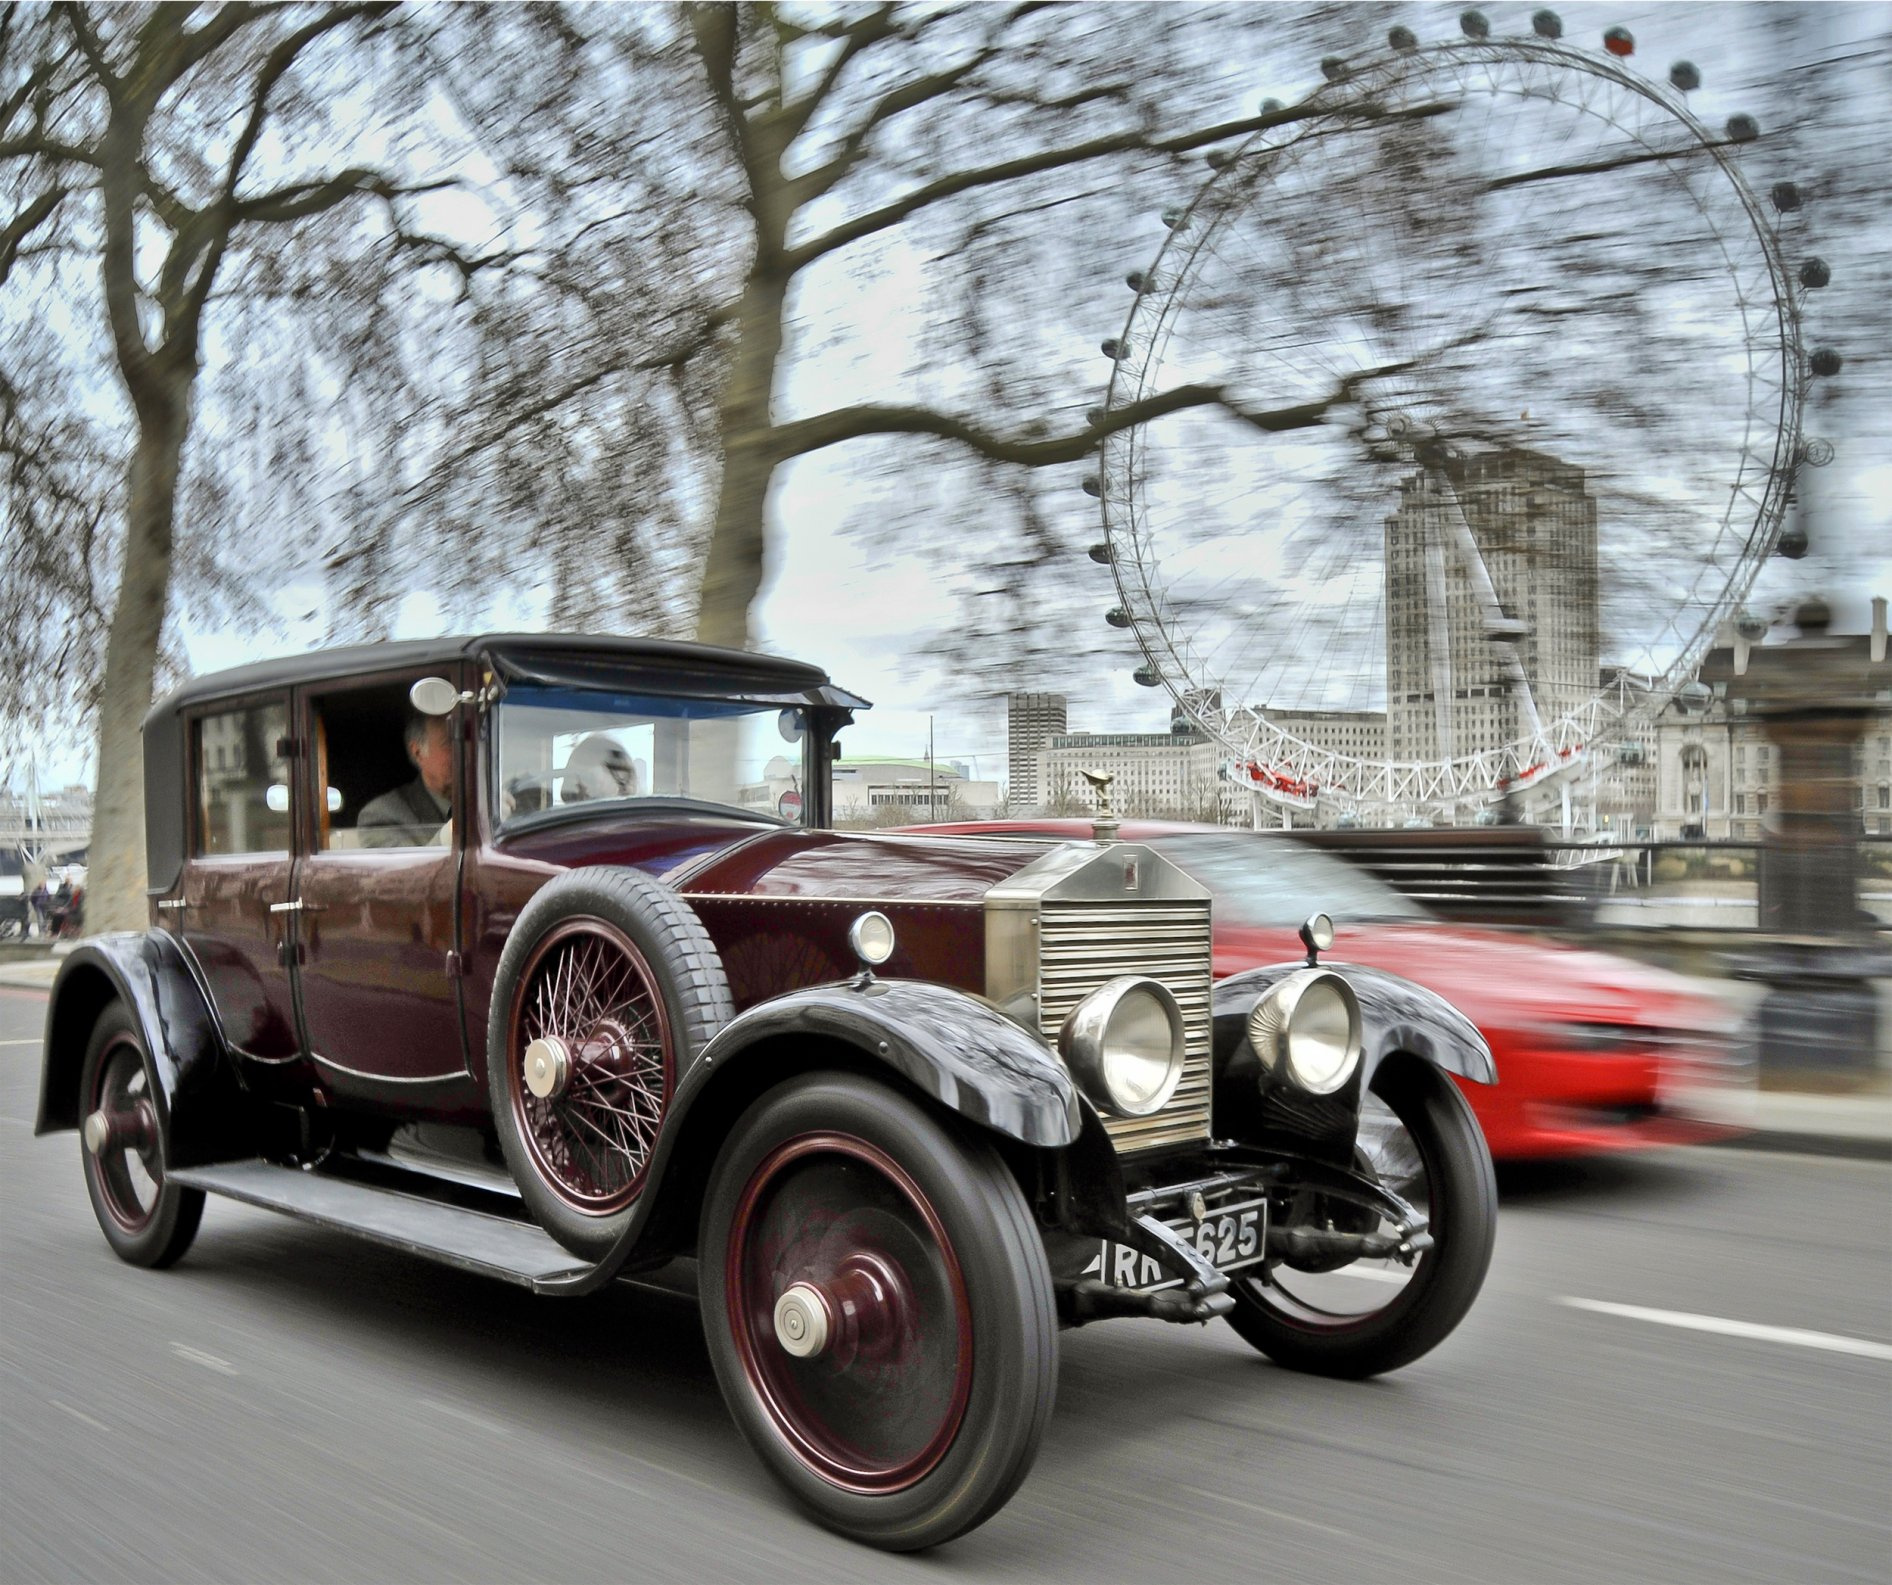 100 Rolls-Royce Cars Parade Through London | superyachts.com